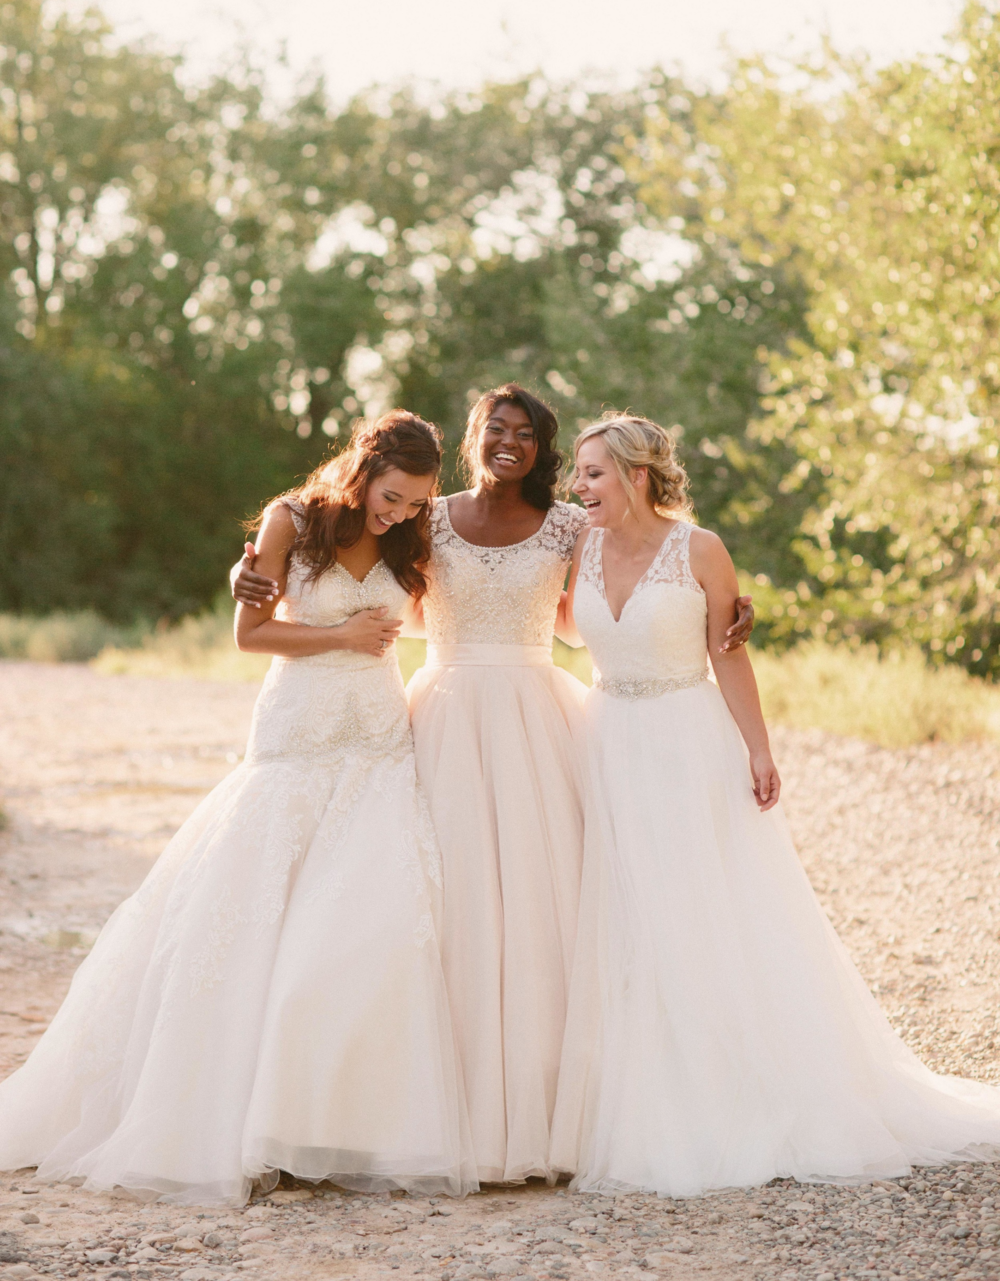 Grand Junction & Palisade wedding photographer Cat Mayer Studio